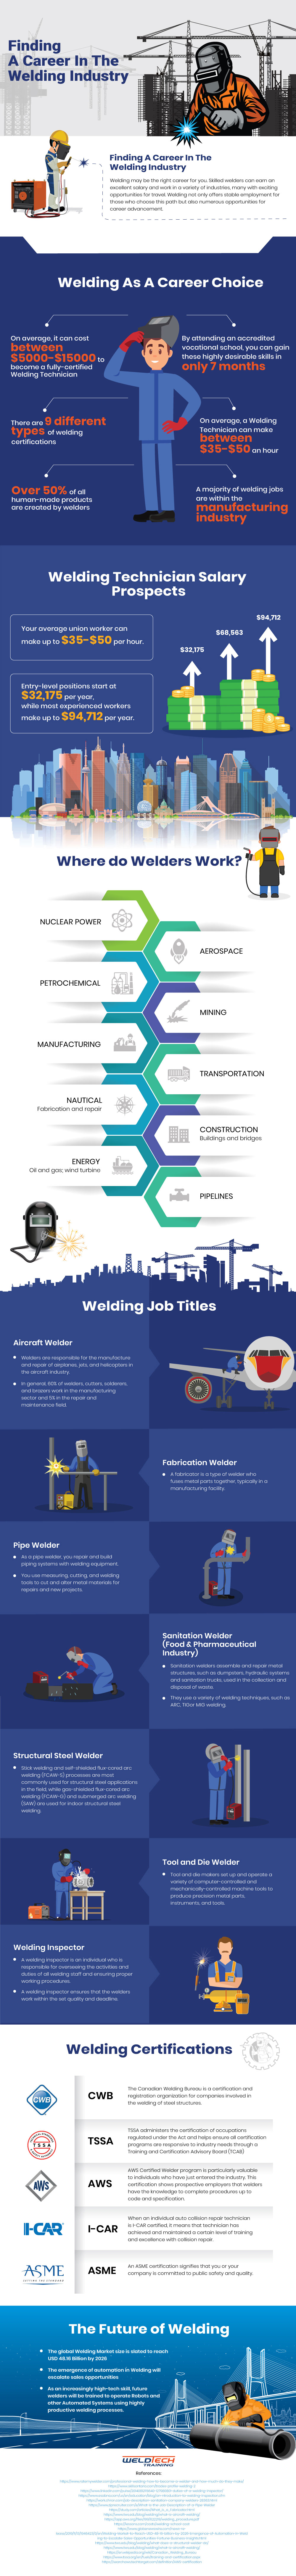 Finding A Career In The Welding Industry | Infographics